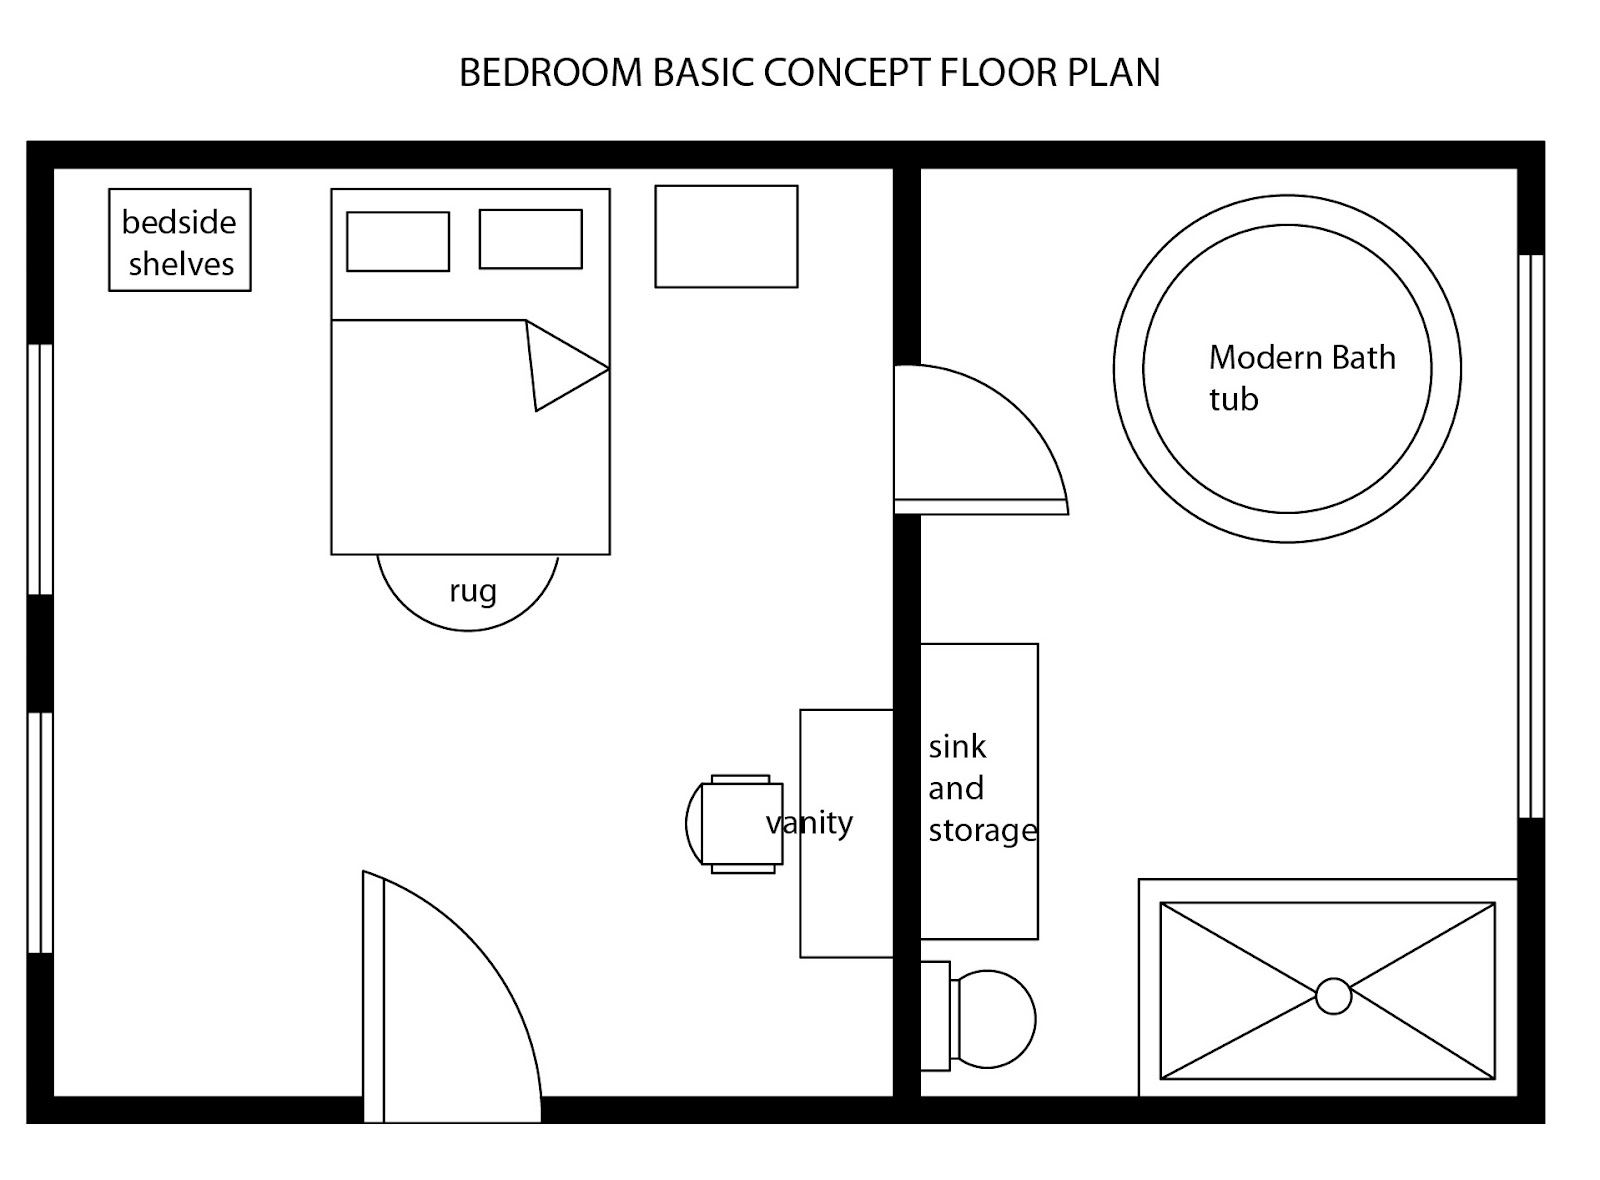 Design floor plan for bathroom home decorating ideasbathroom interior design - Bedroom floor plans homes ...